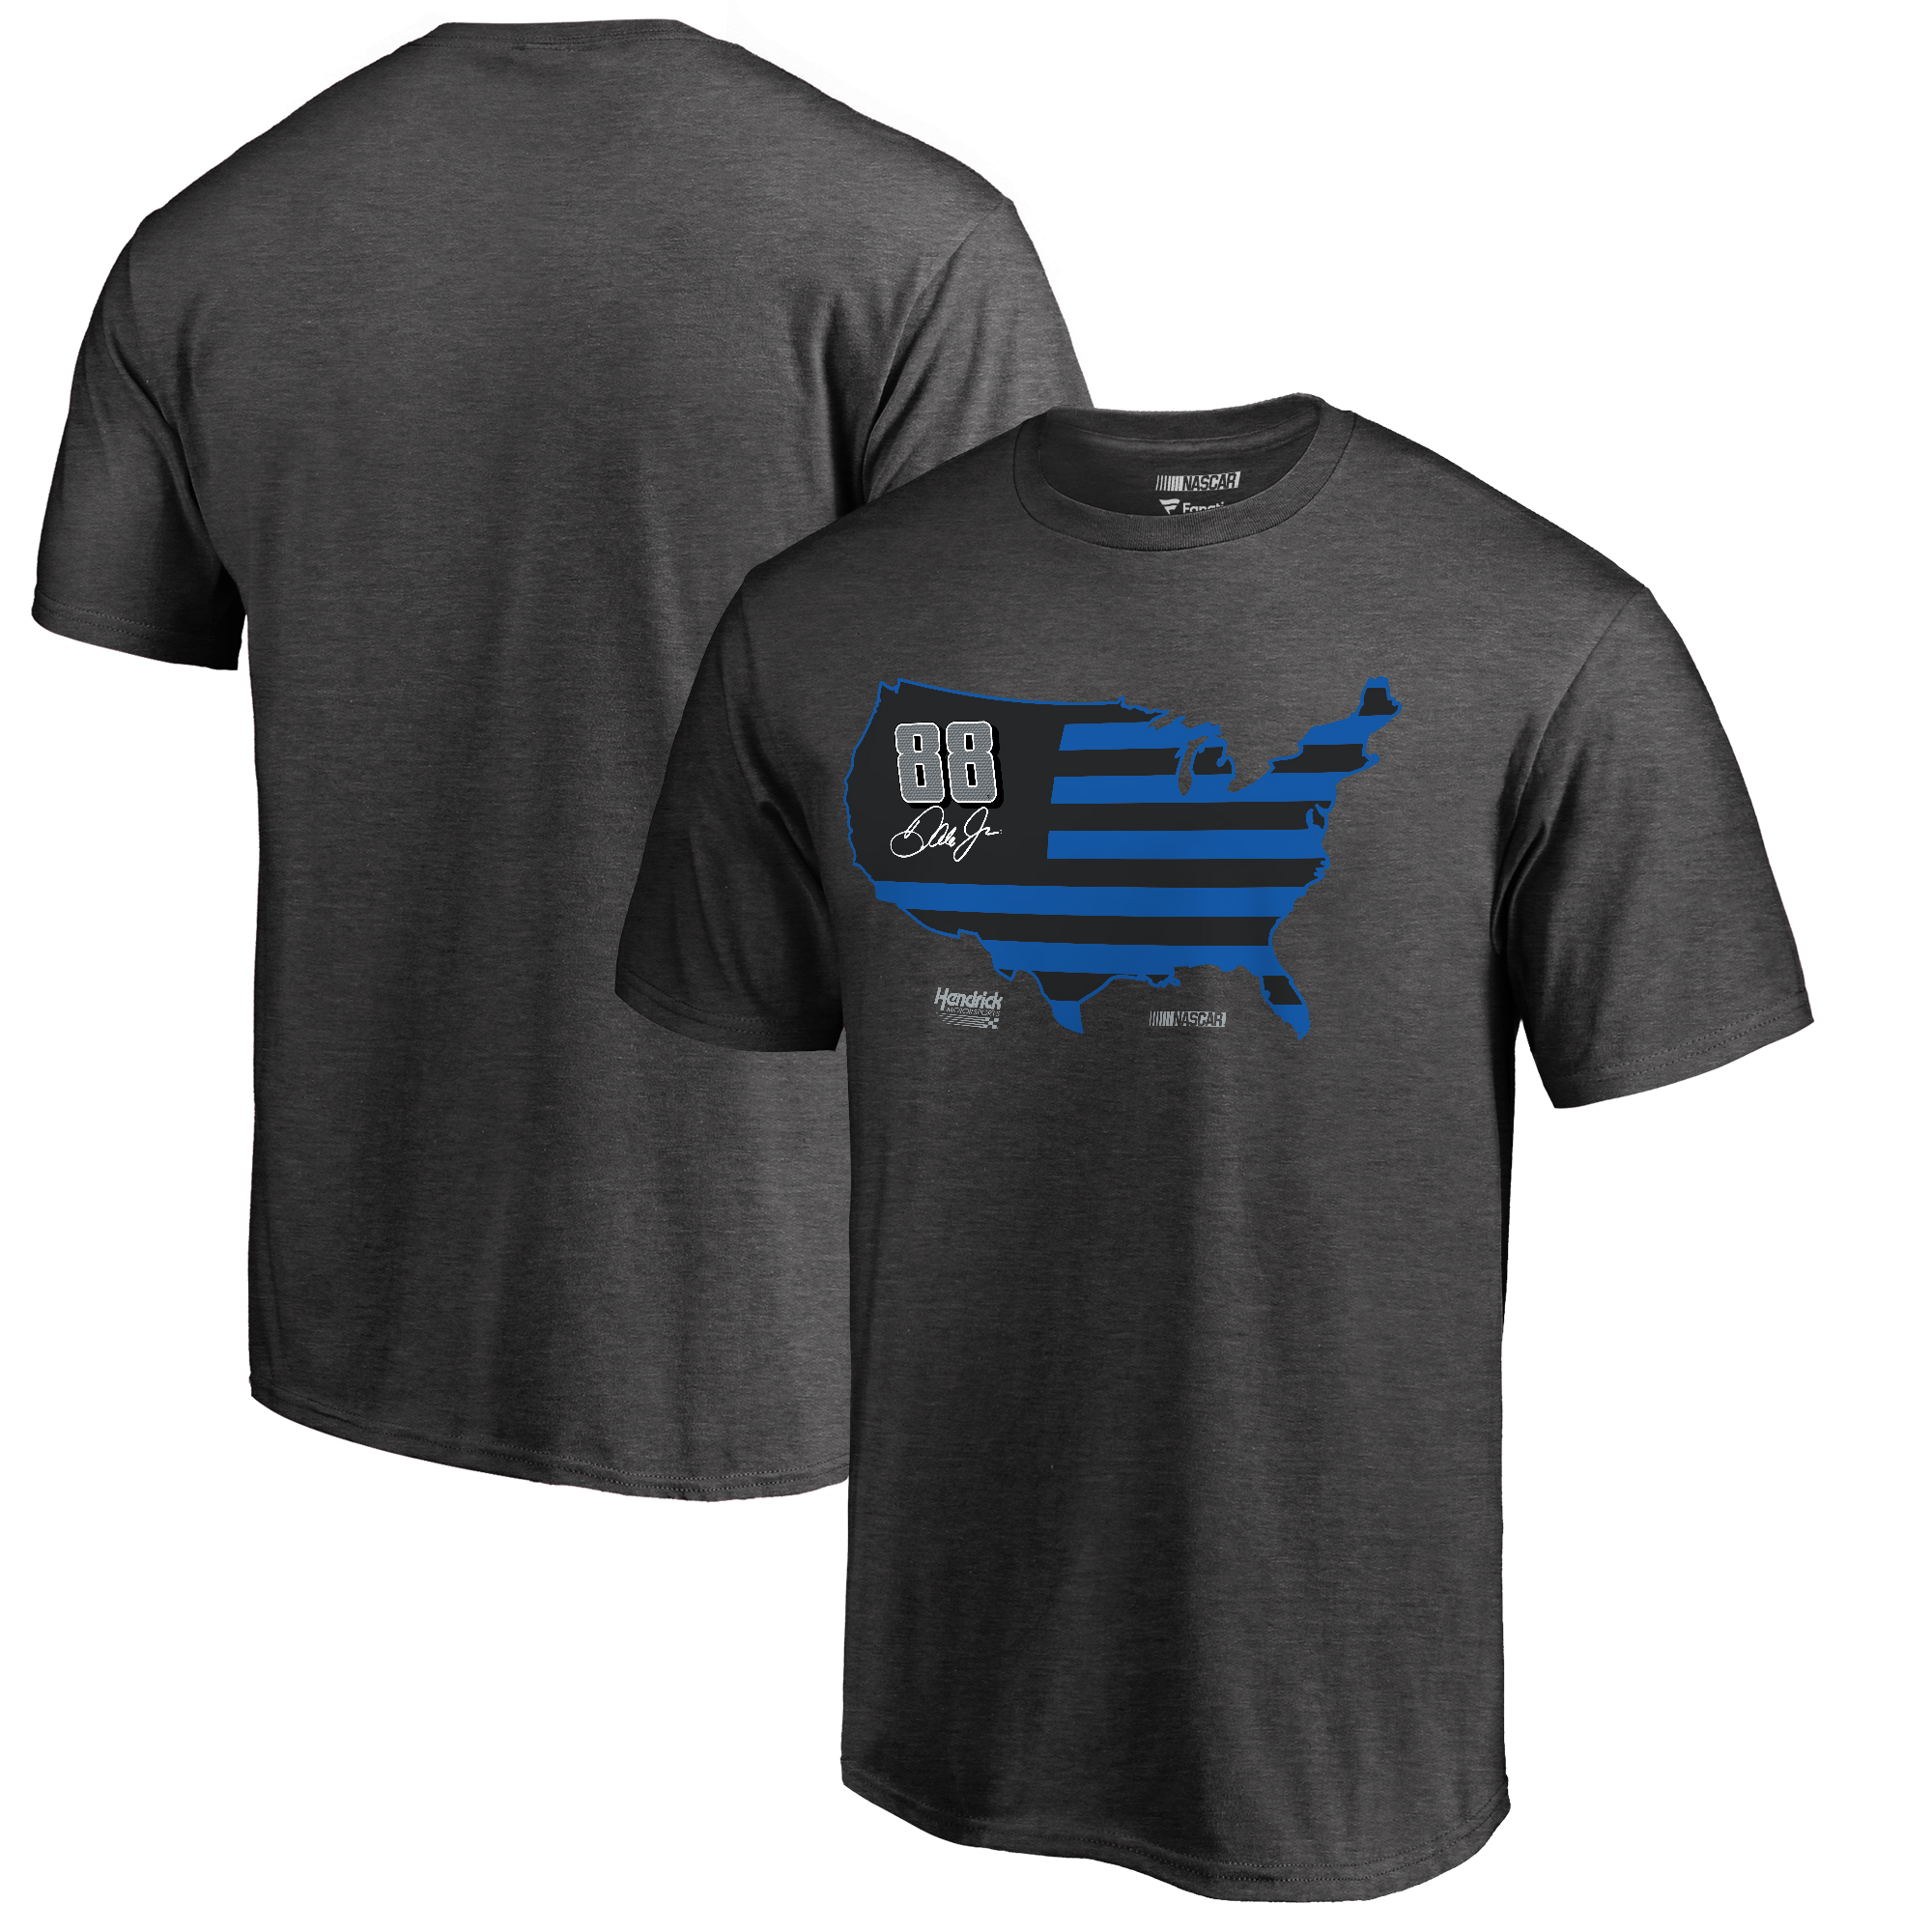 Dale Earnhardt Jr. Fanatics Branded Fan Nation T-Shirt - Heather Gray